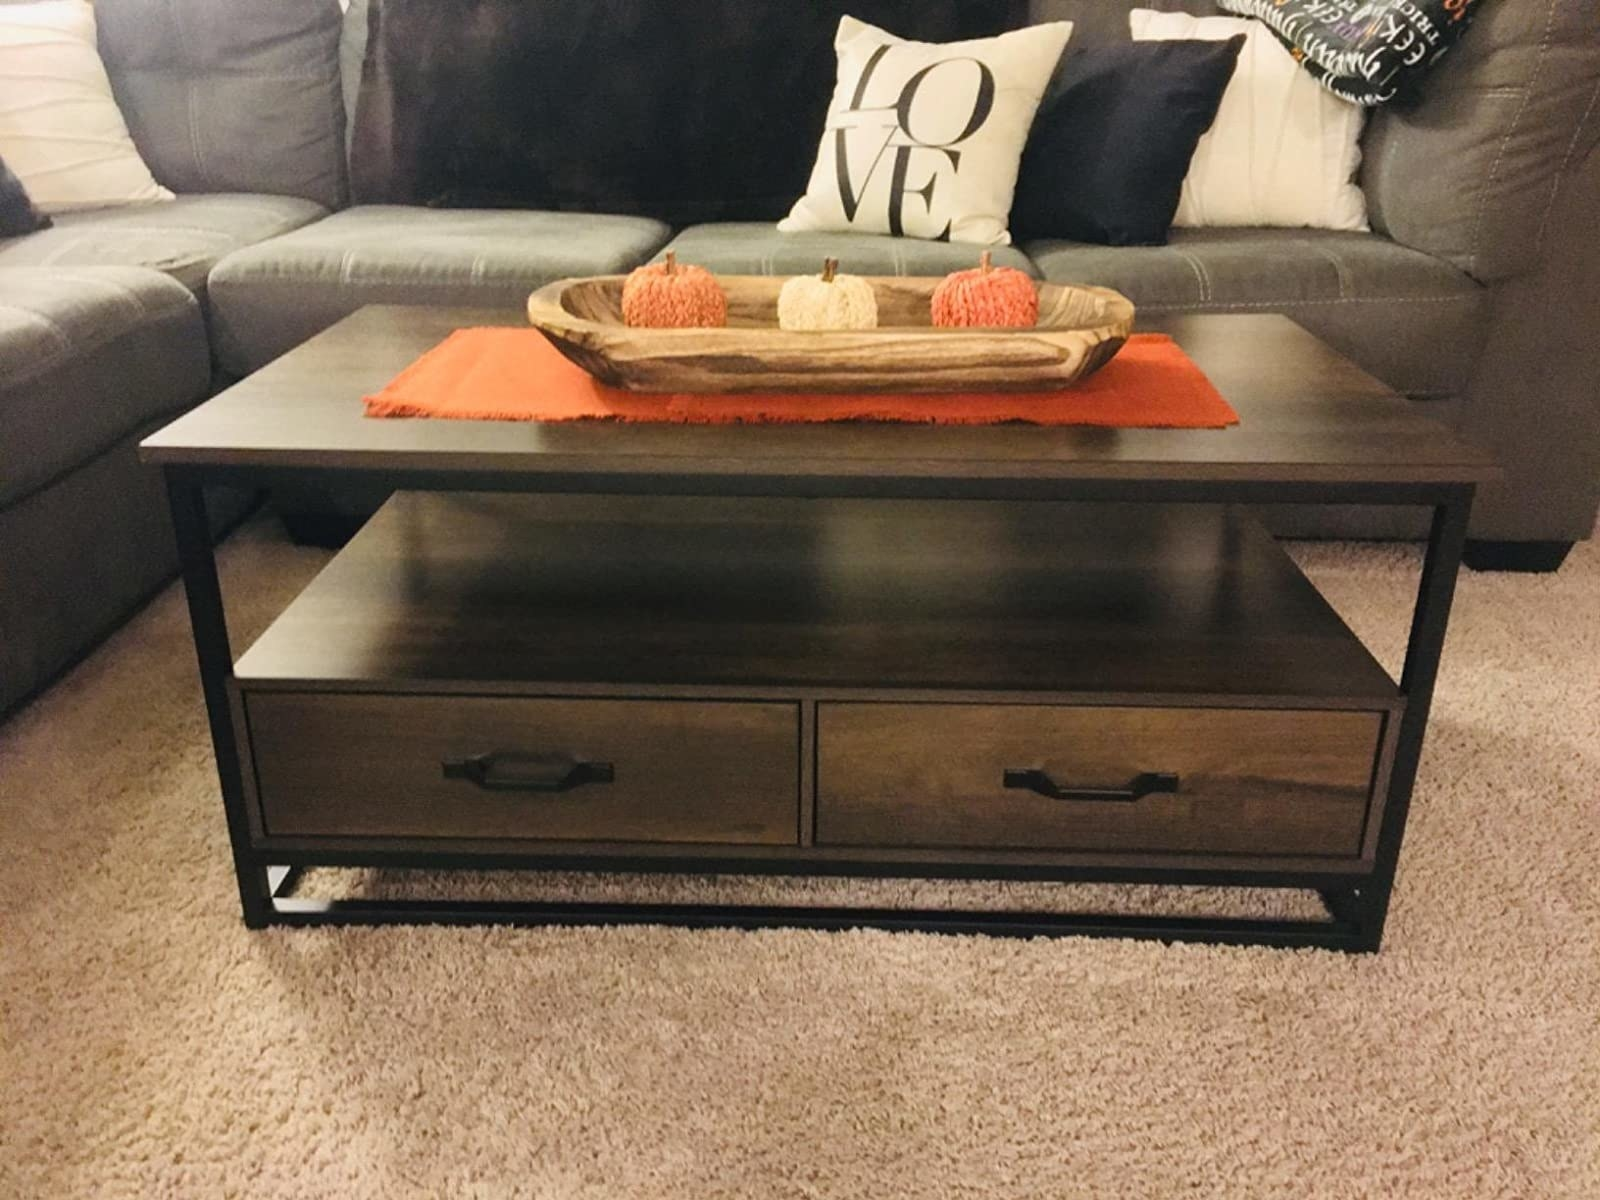 reviewer image of the homecho industrial coffee table in their living room